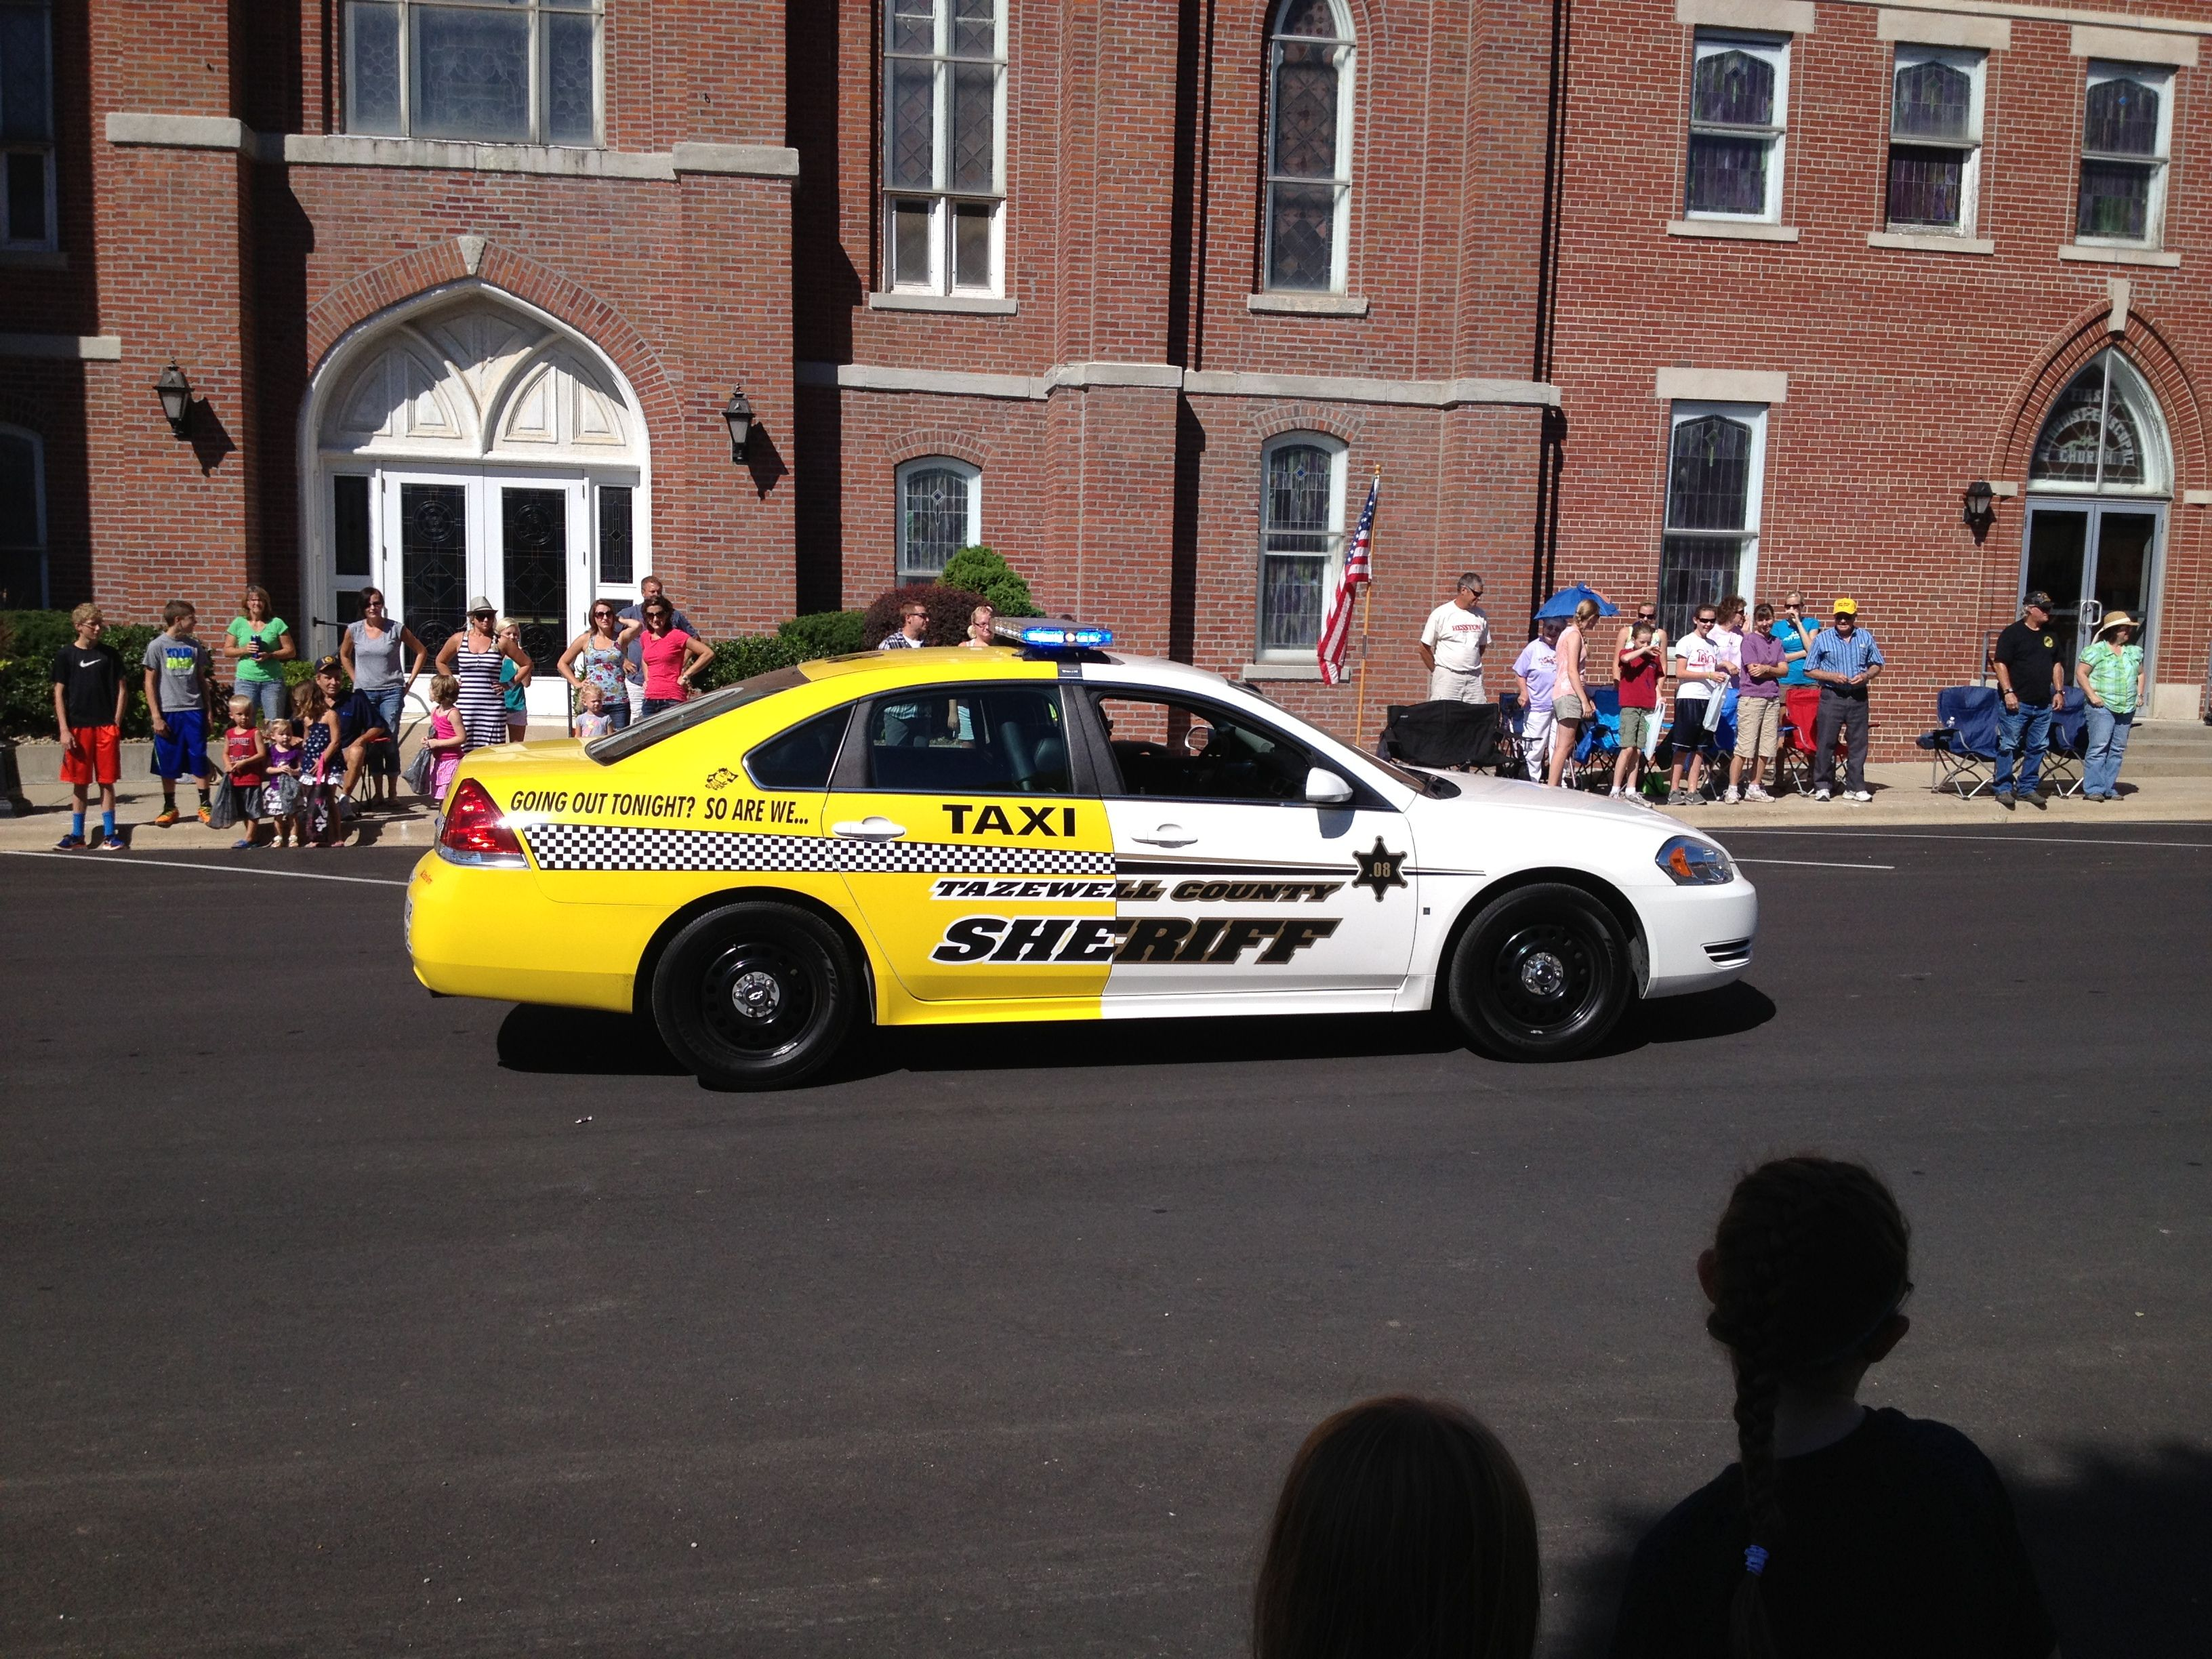 Sheriff Tazewell County Illinois - unique paint scheme on police car ...